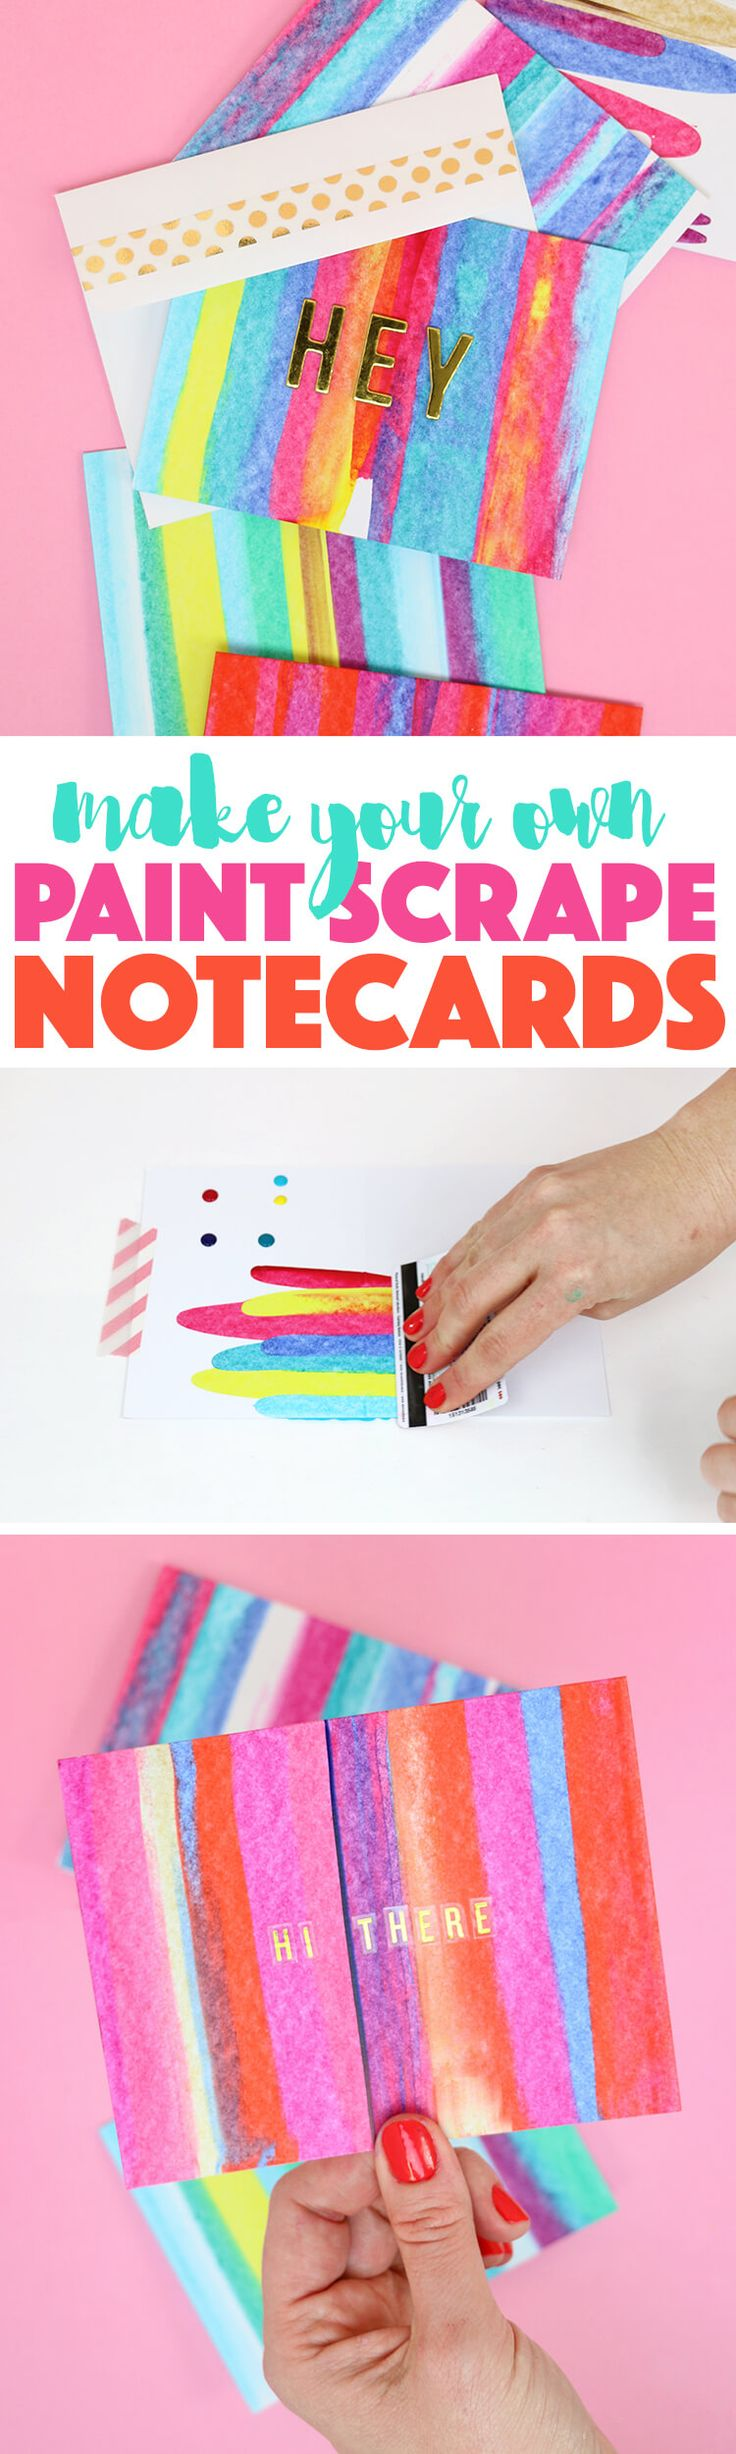 DIY art project idea - so easy and lots of fun - learn how to make paint scrape notecards